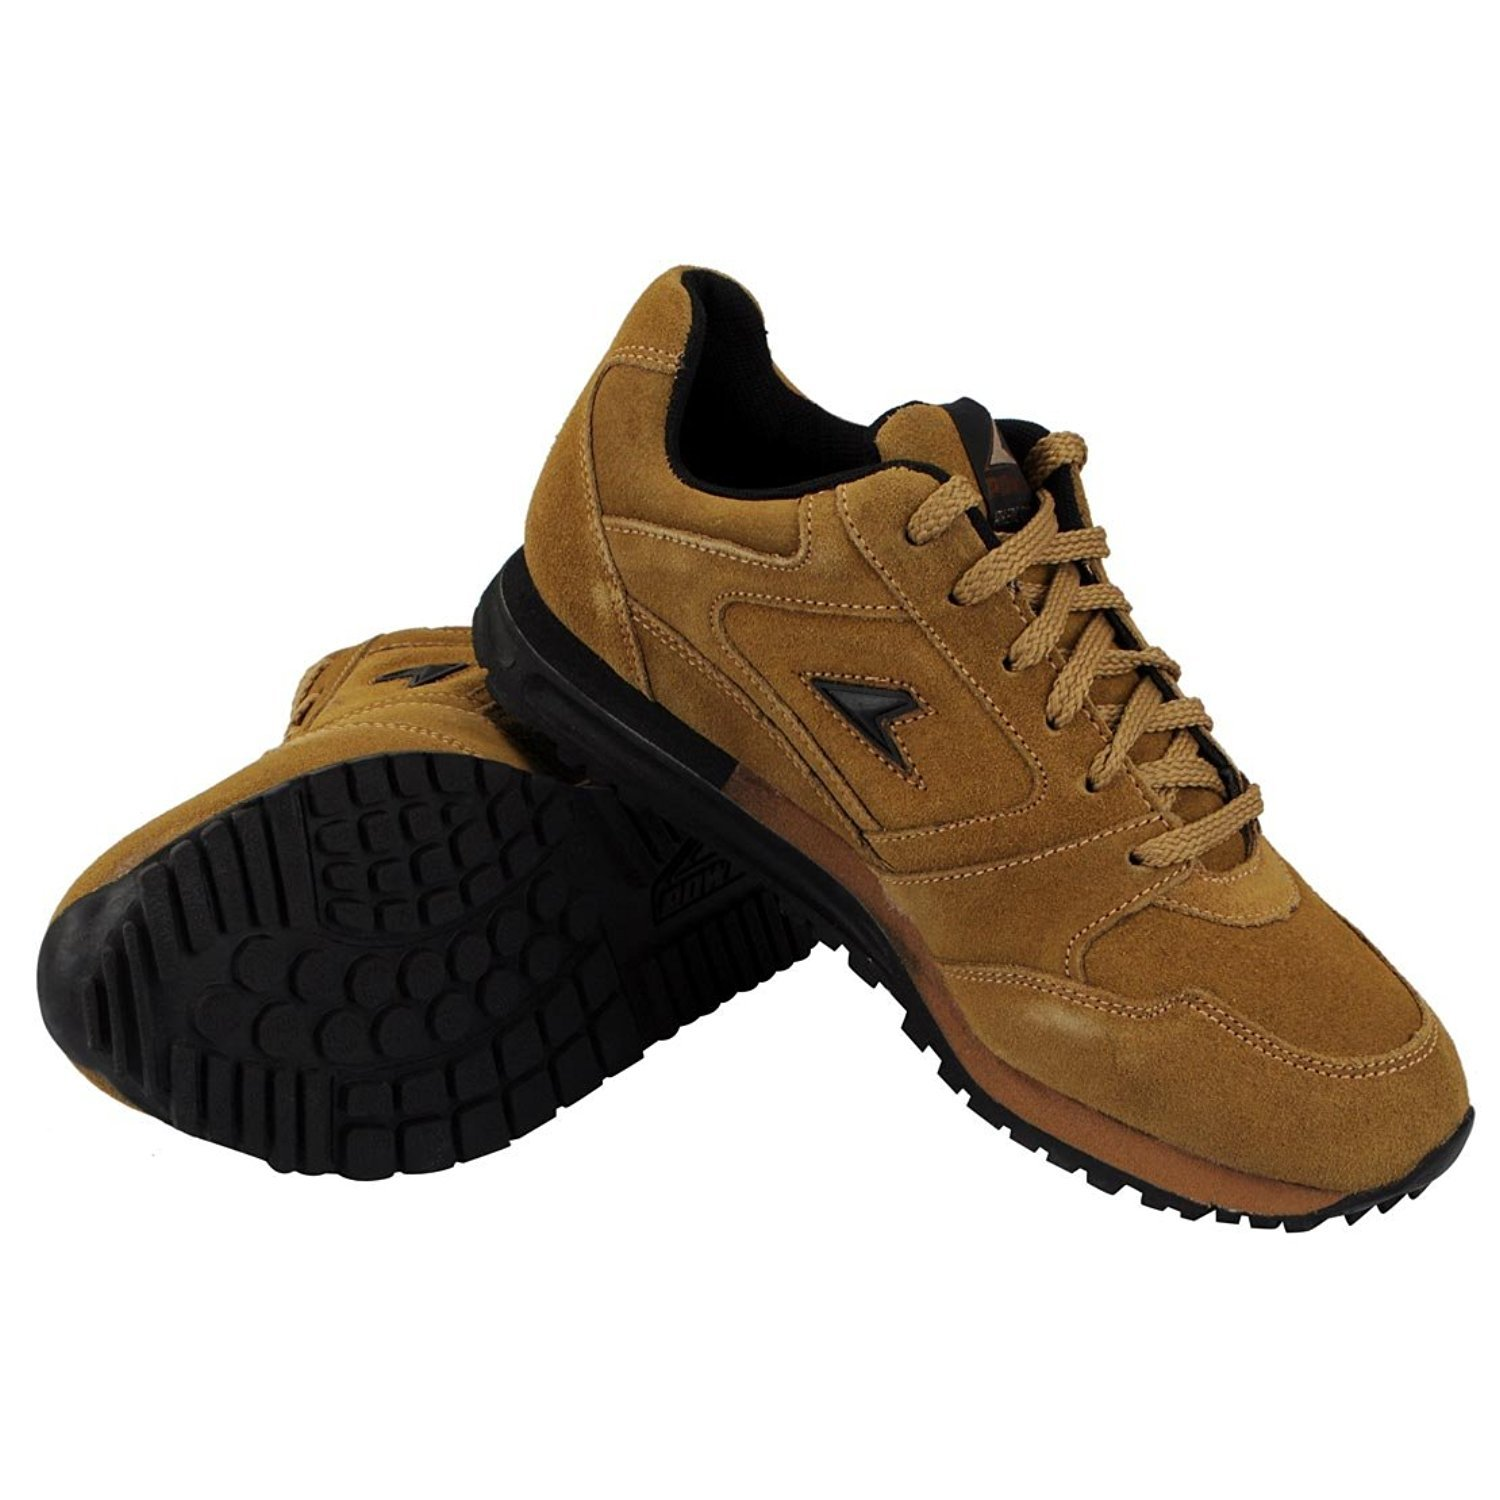 Buy BATA Men's Sports Shoes at Amazon.in